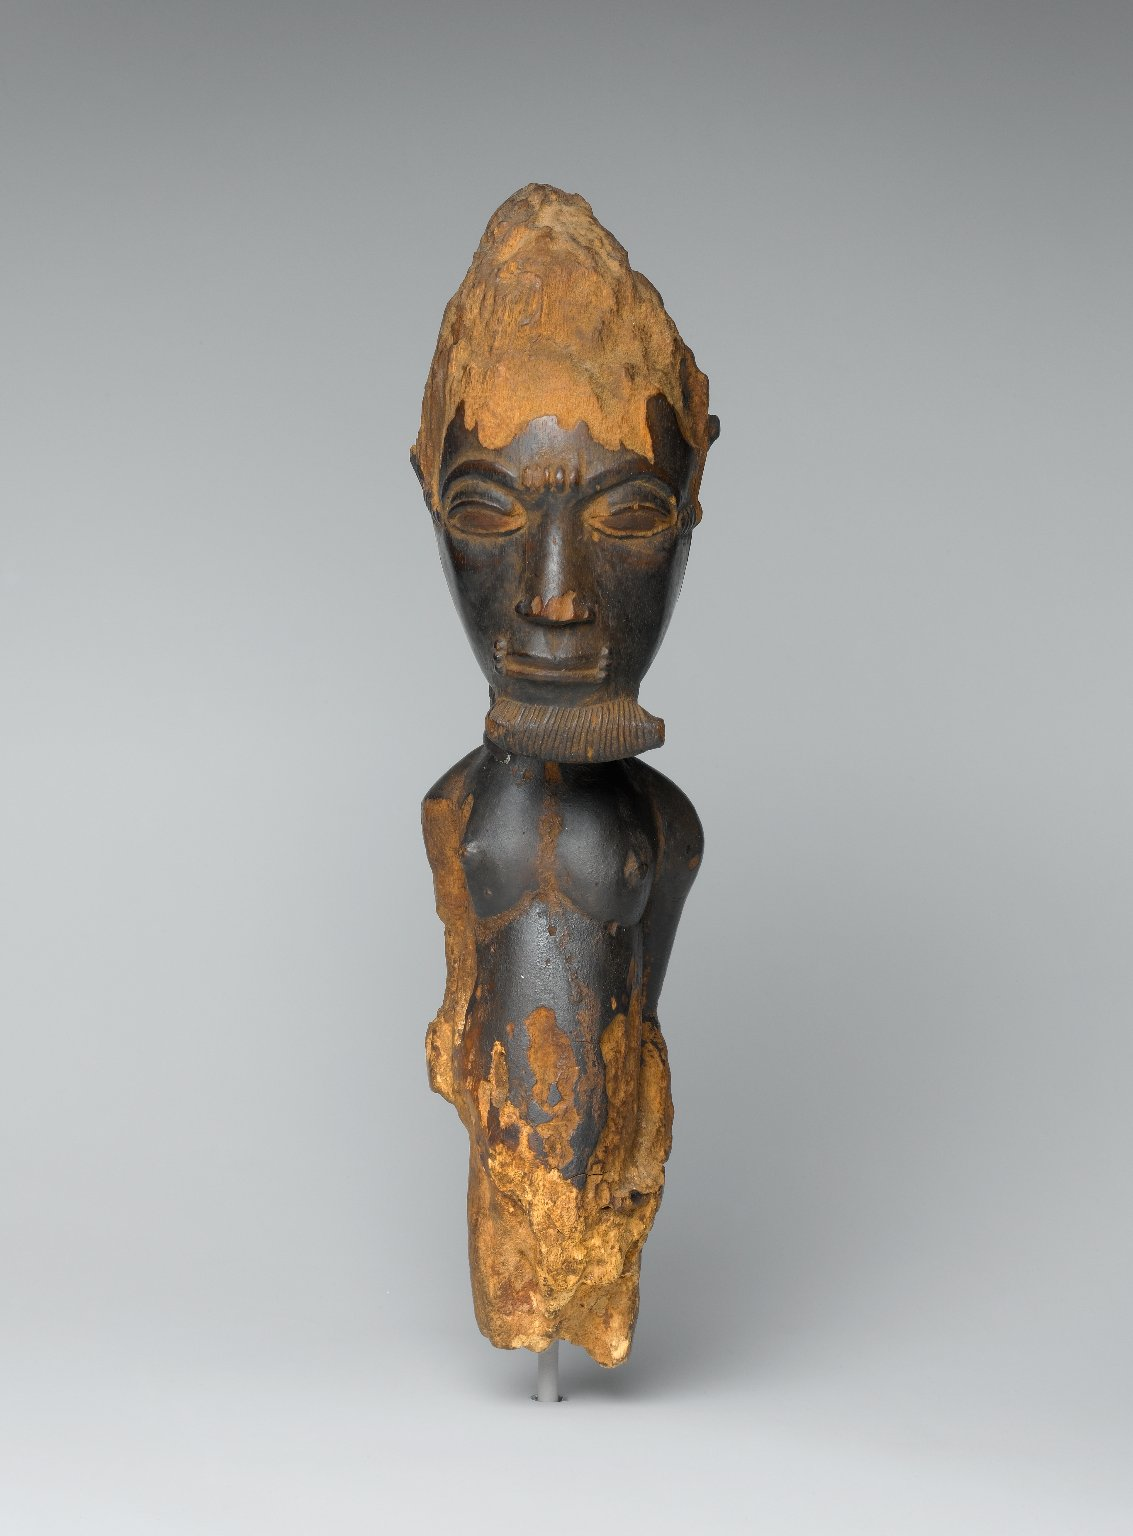 Brooklyn Museum: Male Figure (Waka Sran)